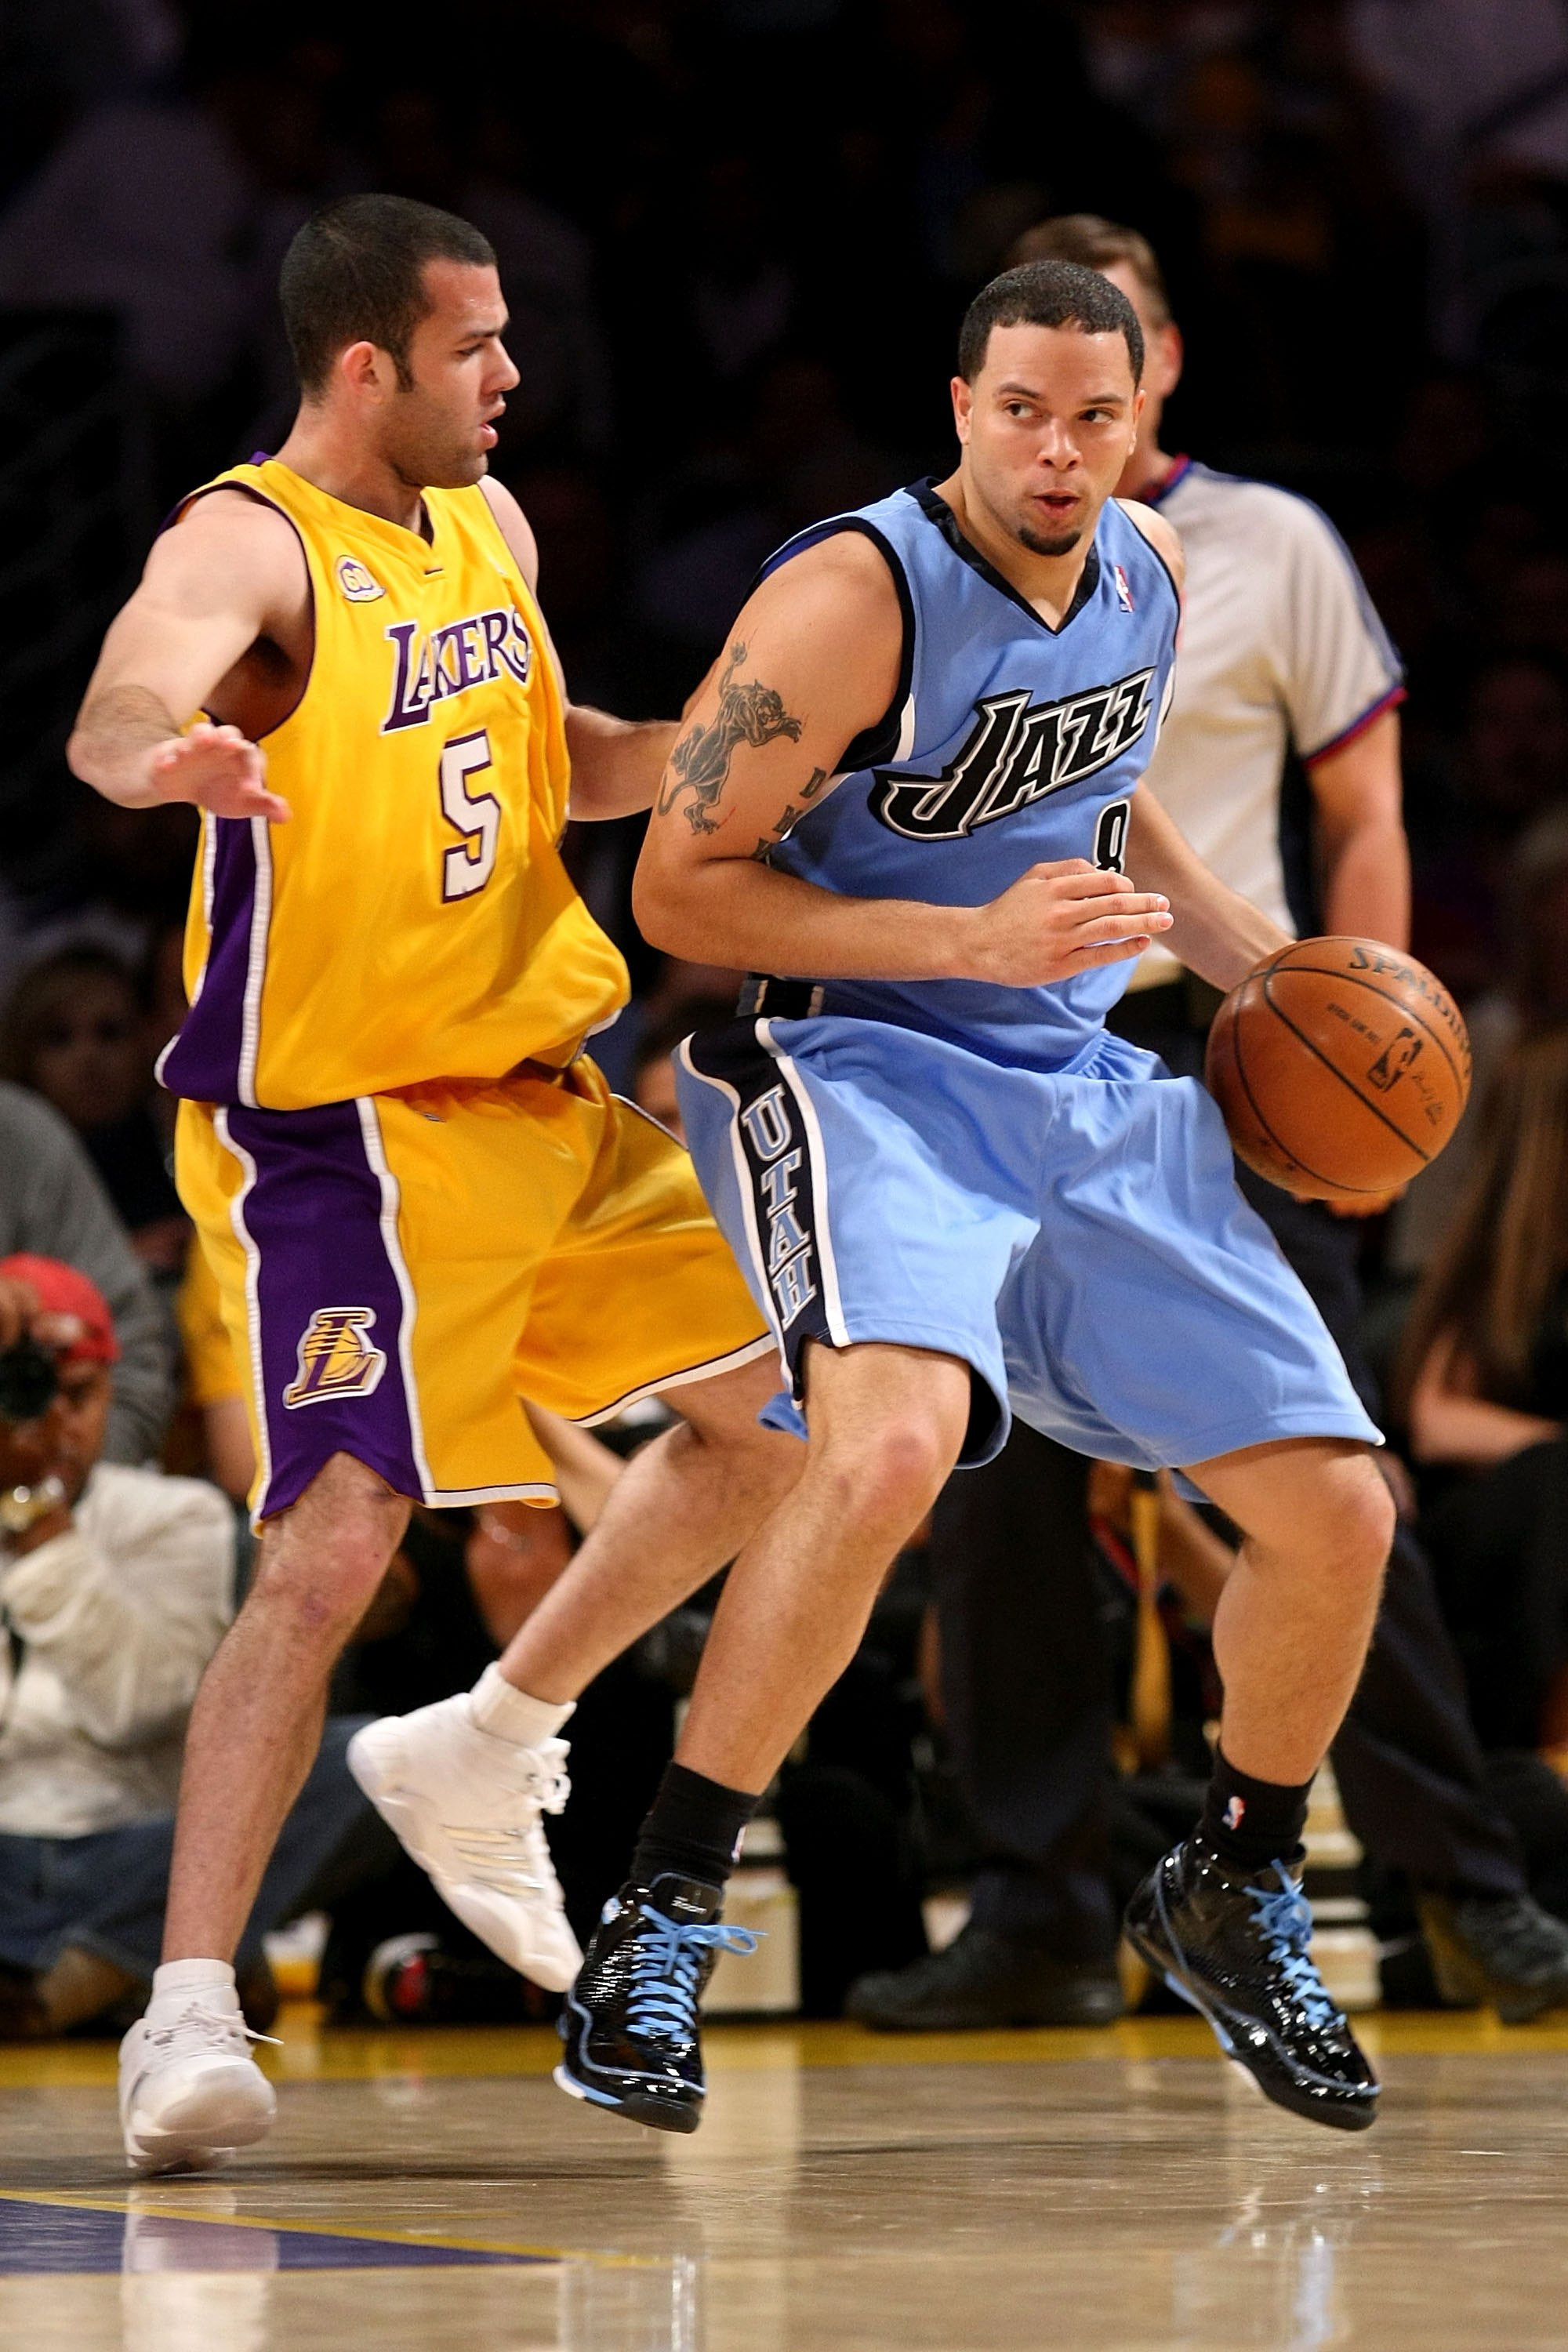 LOS ANGELES, CA - MAY 14:  Deron Williams #8 of the Utah Jazz goes up against Jordan Farmar #5 of the Los Angeles Lakers in Game Five of the Western Conference Semifinals during the 2008 NBA Playoffs on May 14, 2008 at Staples Center in Los Angeles, Calif